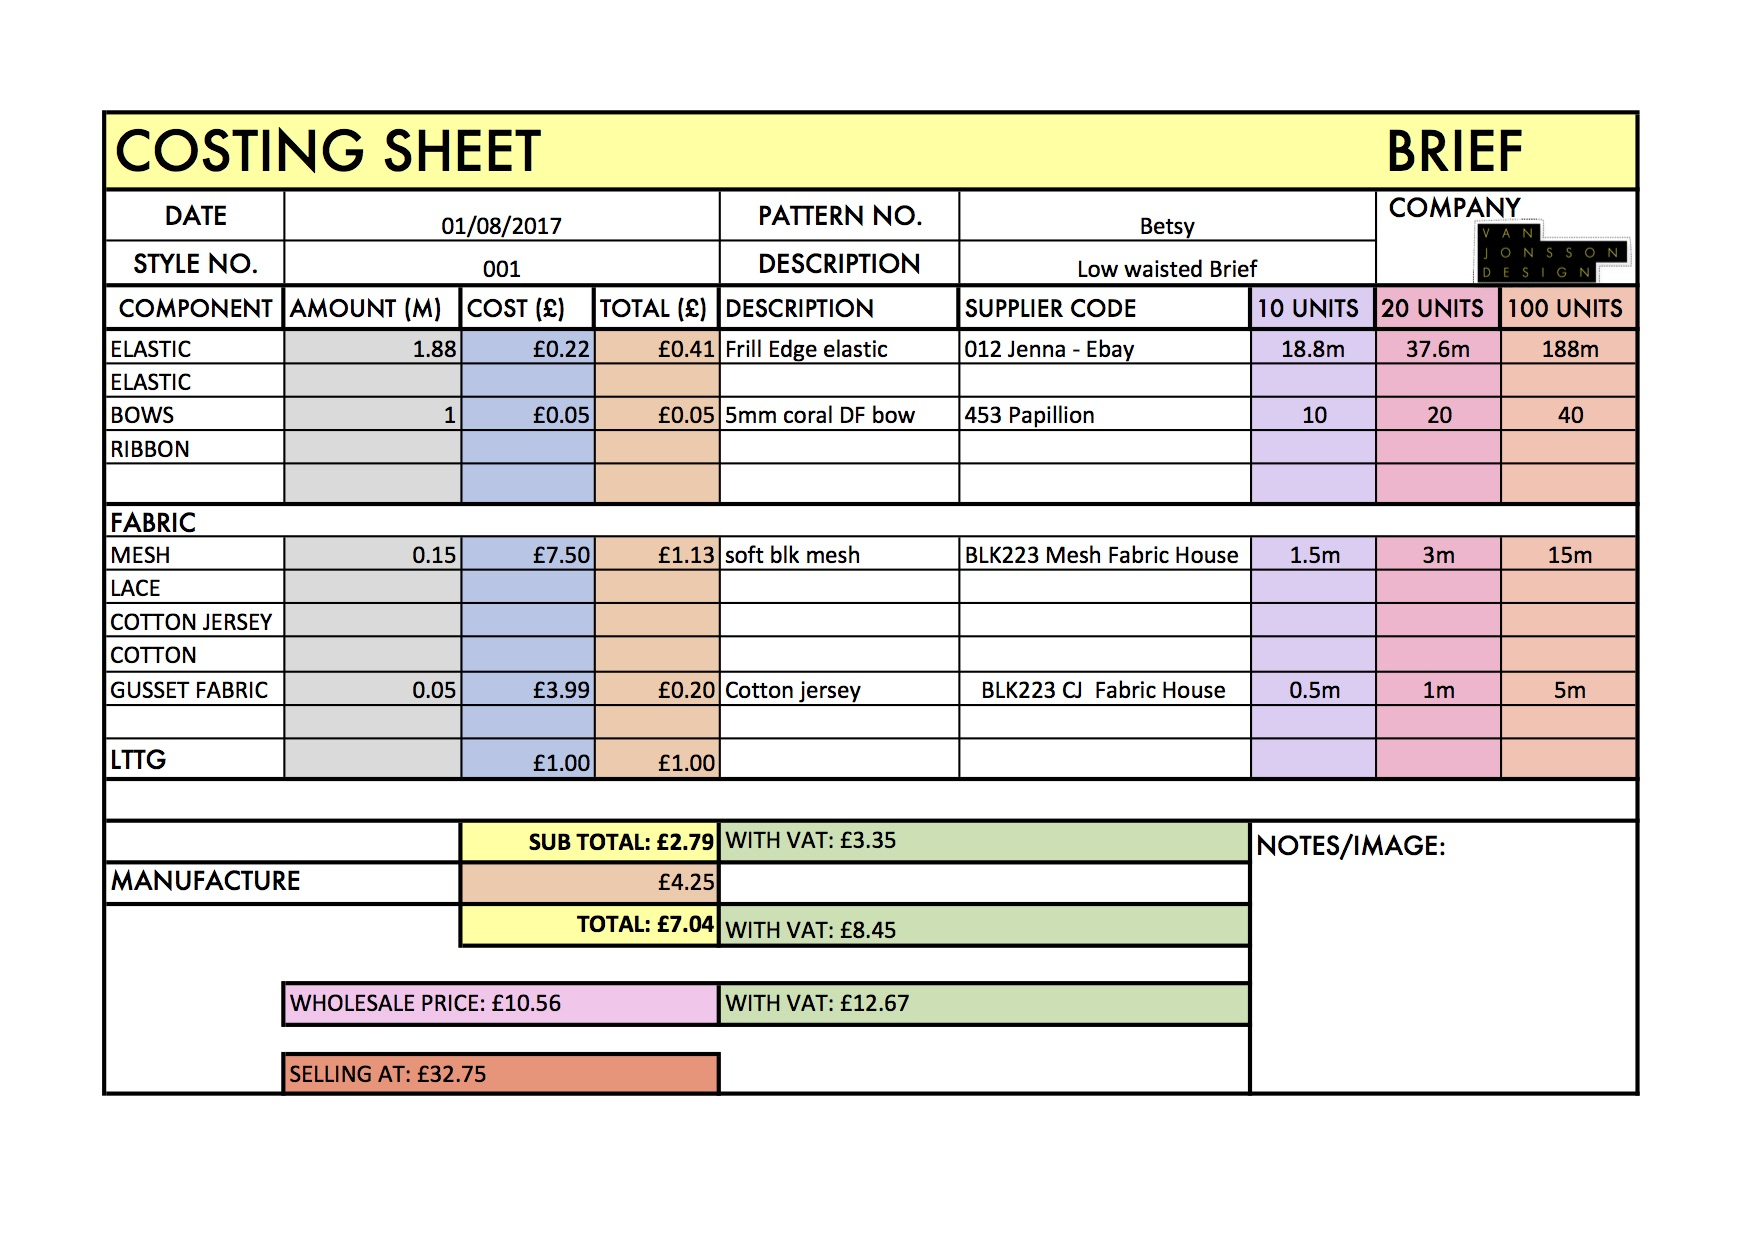 costing_design sheet brief.jpg